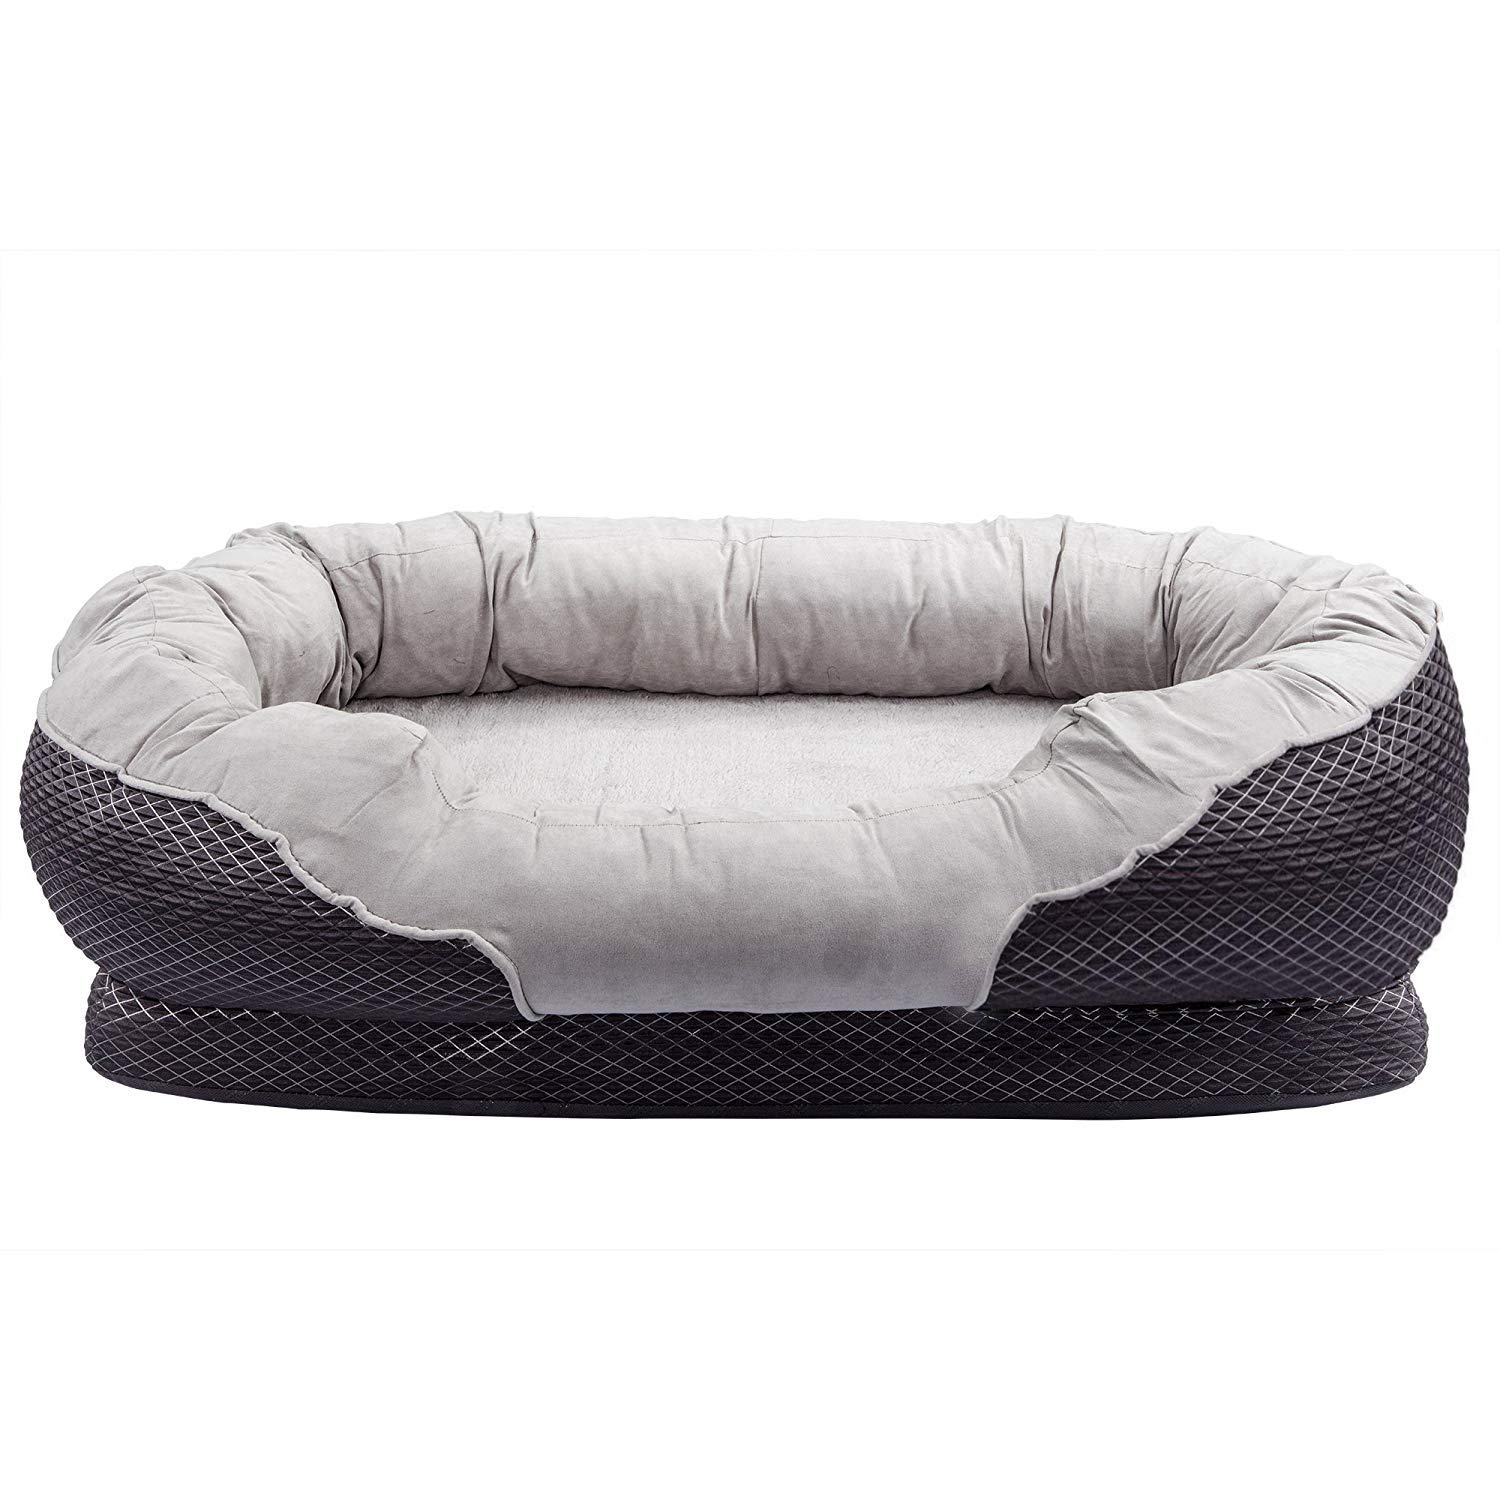 AsFrost Dog Bed, Orthopedic Dog Beds with Removable Washable Cover, Memory Foam Pet Bed for Dogs Cats, Nonslip Bottom Pet Beds for Sleep